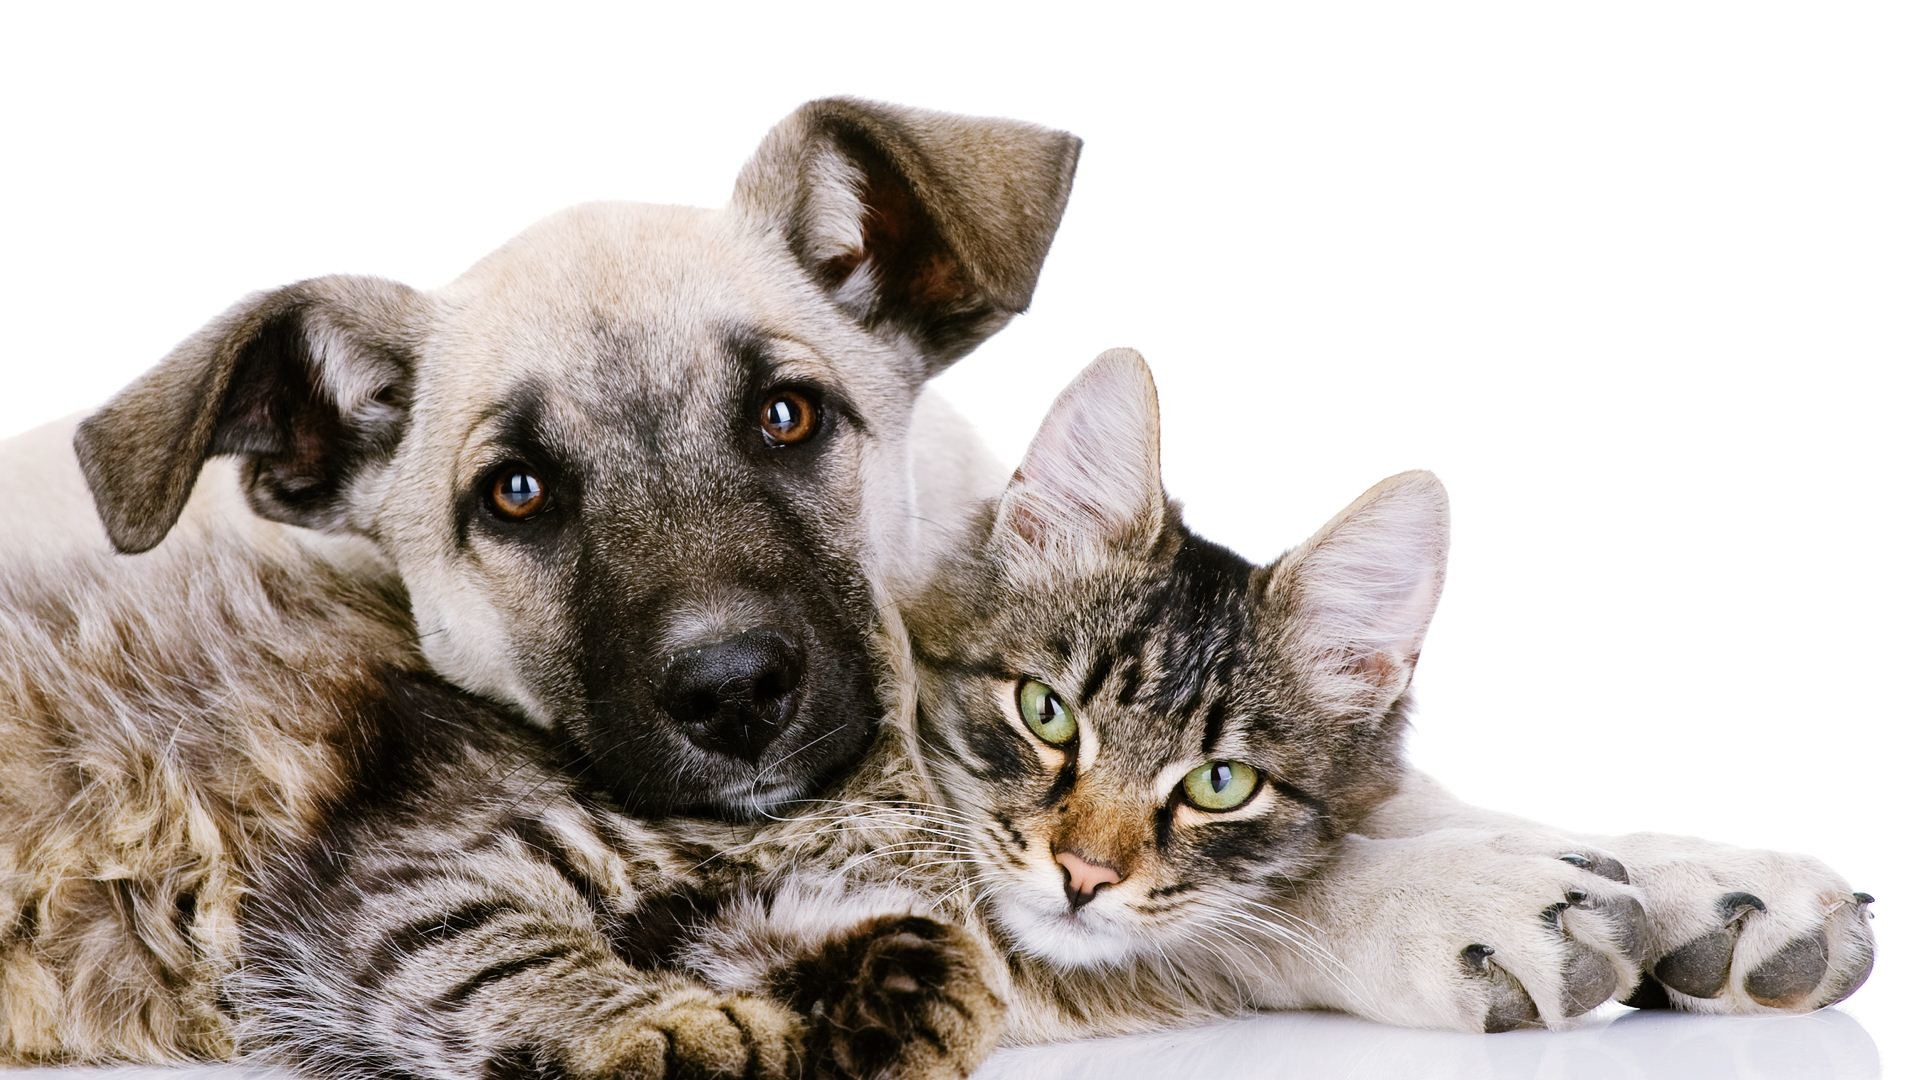 Cats And Dogs Wallpaper ·① WallpaperTag